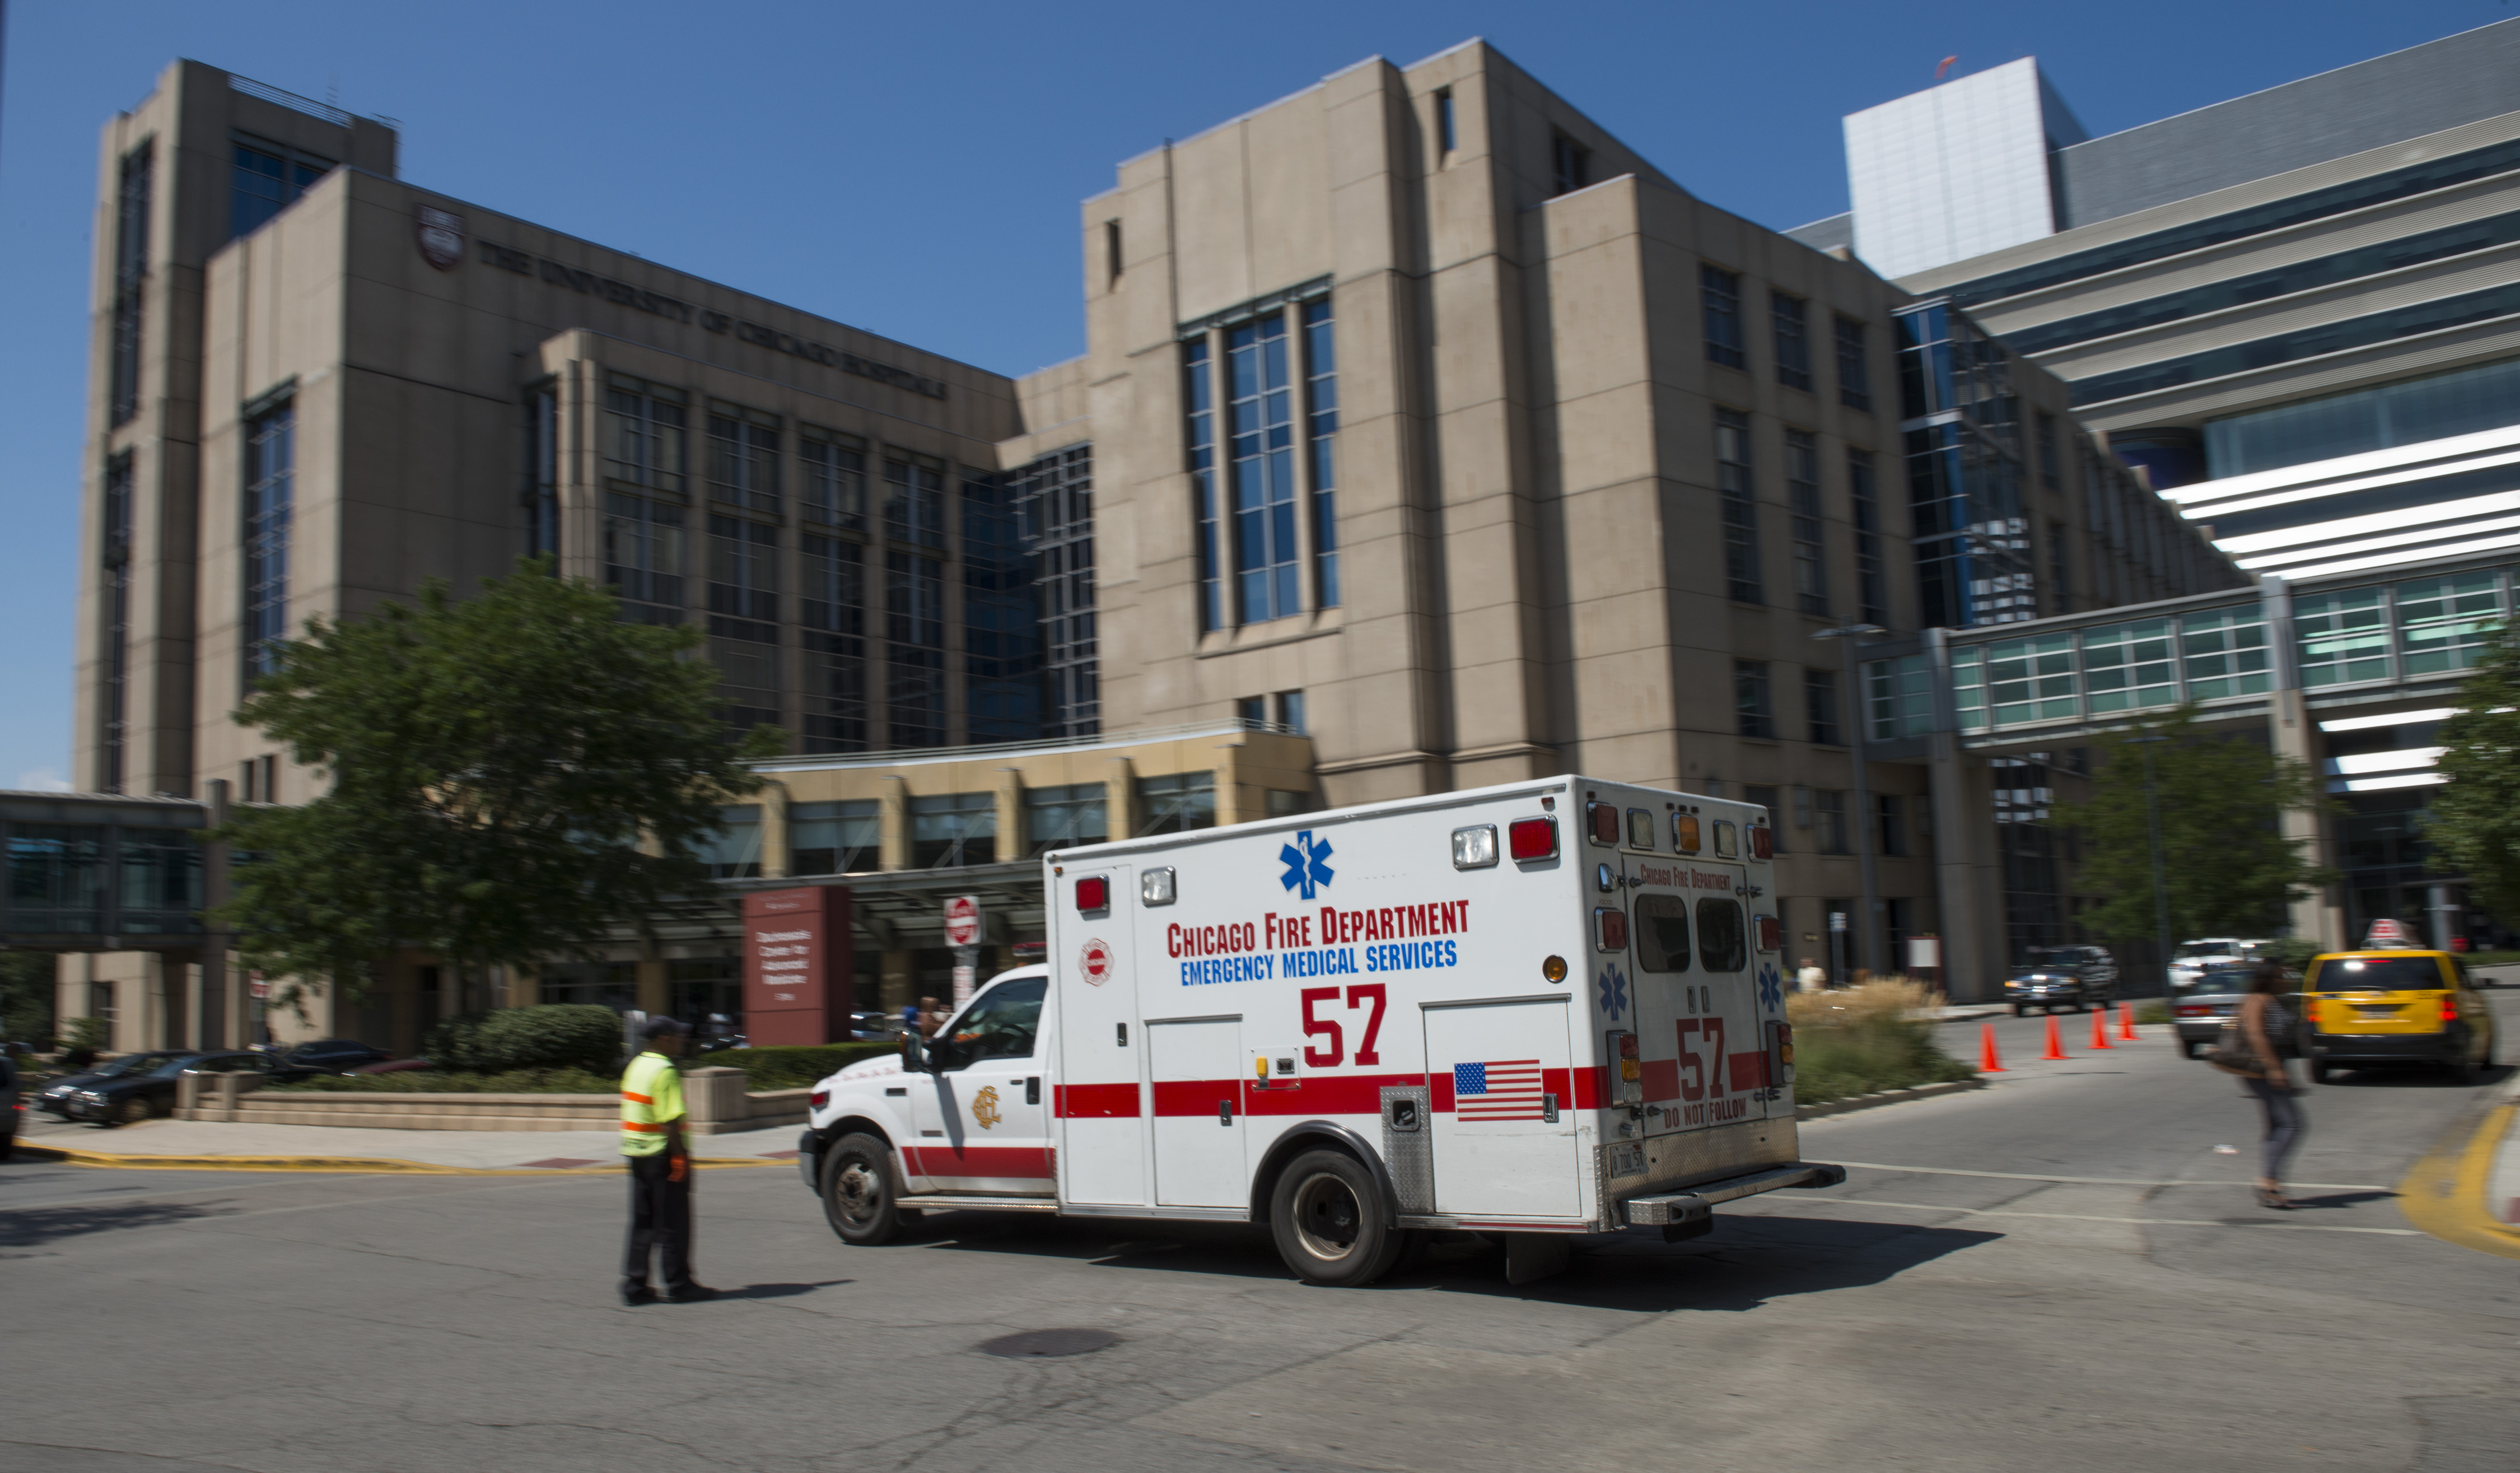 The University of Chicago Medicine is one of the many partners the University works with for its emergency management program.